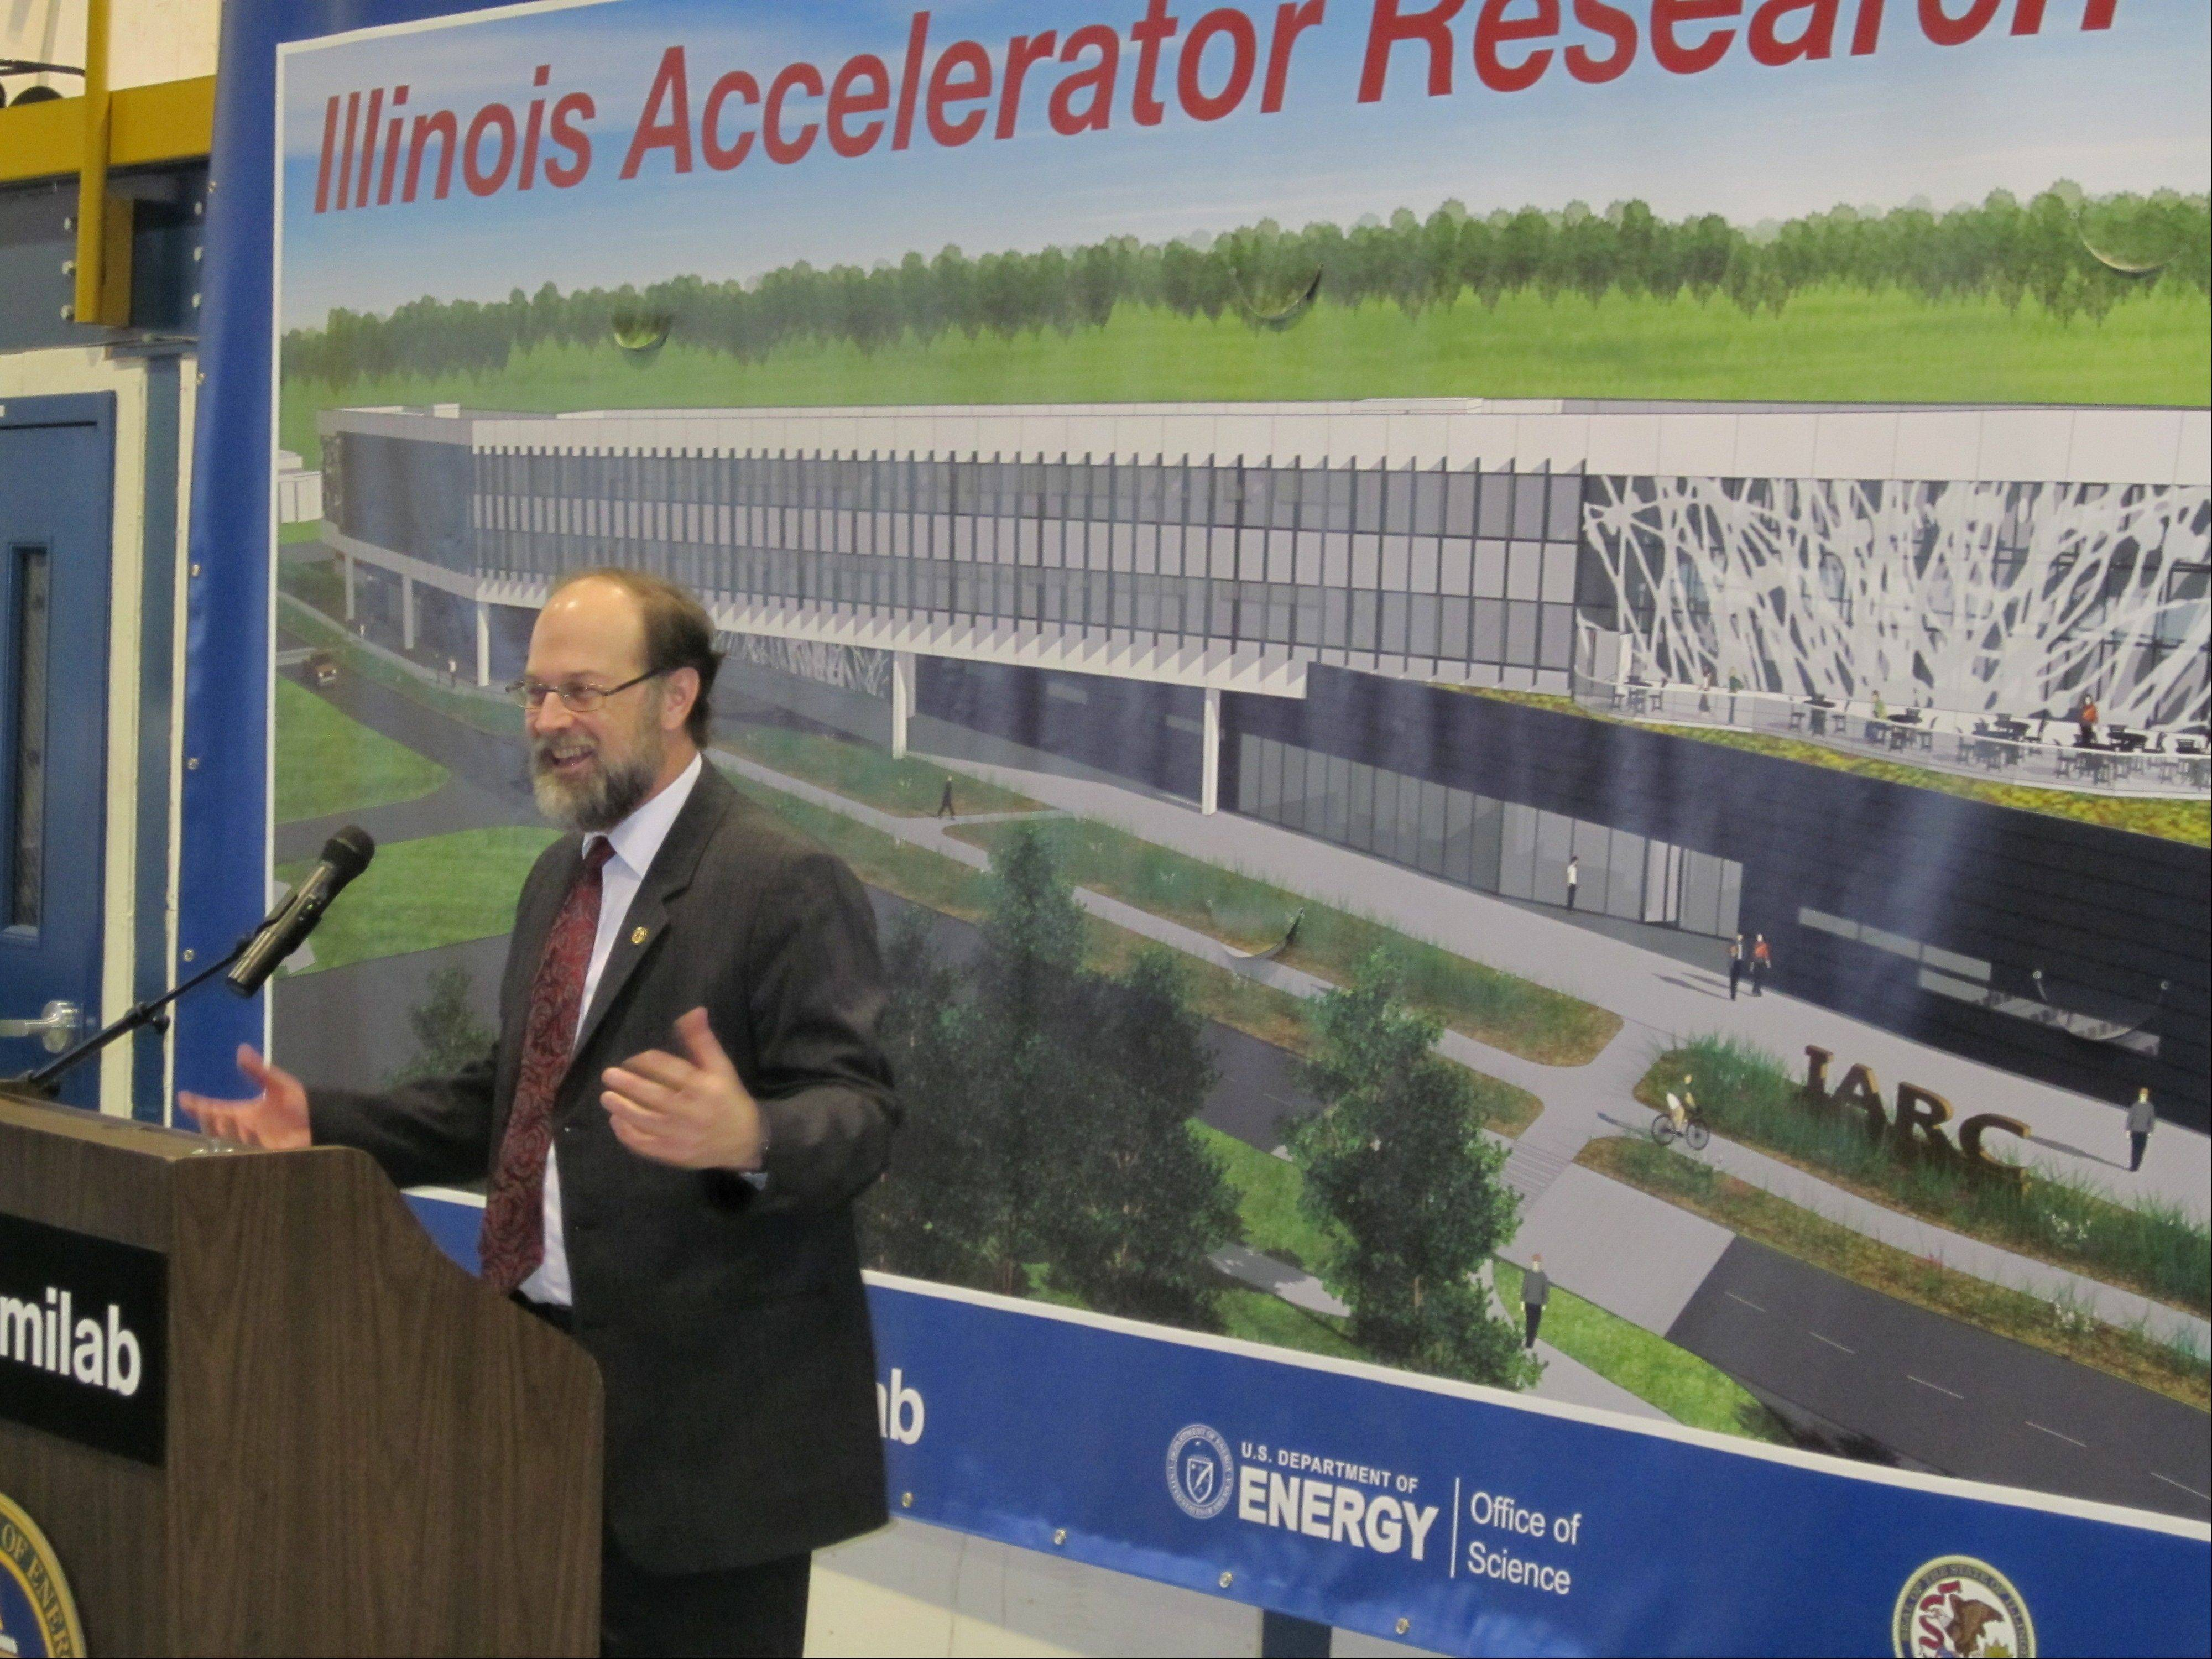 State Rep. Mike Fortner of West Chicago, a particle physicist, Friday explains how the new Illinois Accelerator Research Center will help industry and commerce in Illinois, at a groundbreaking ceremony for the center at Fermilab.